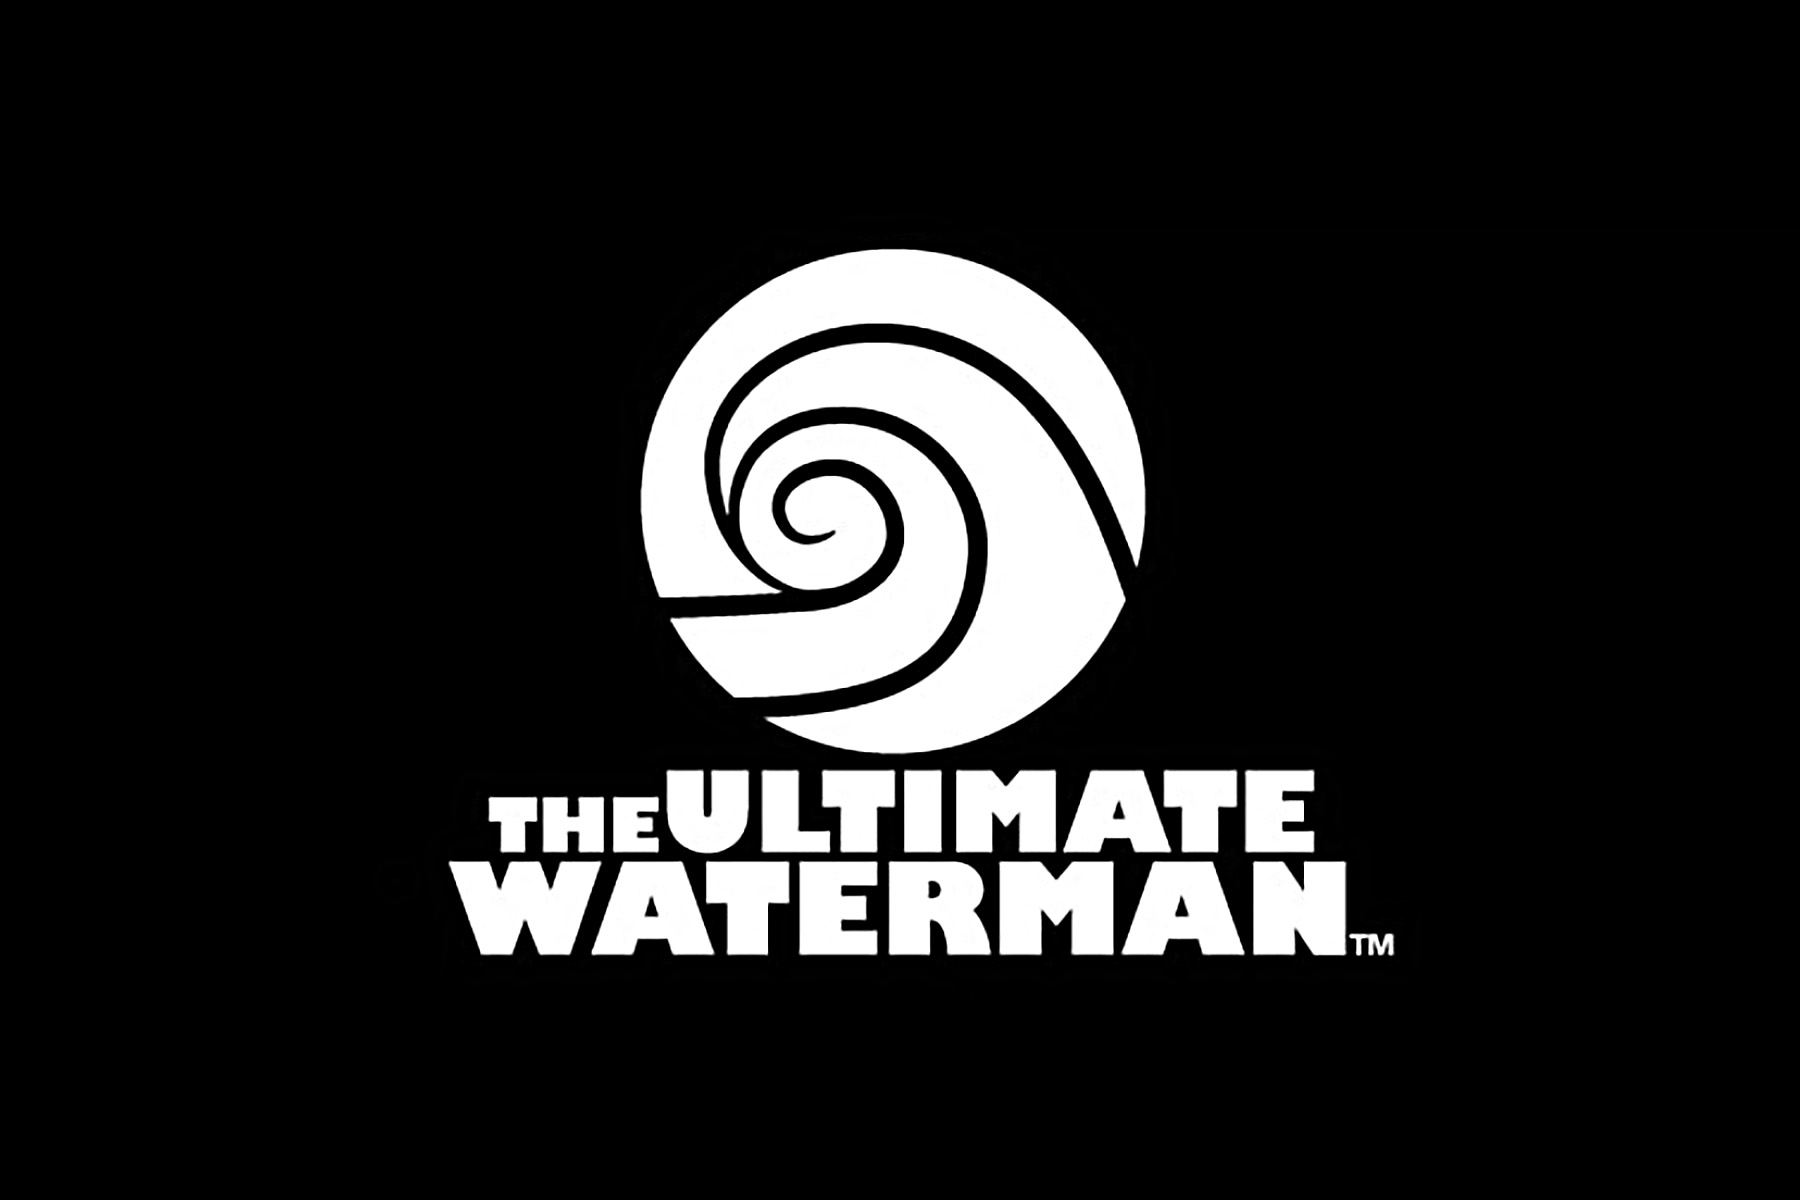 The Ultimate Waterman 2017